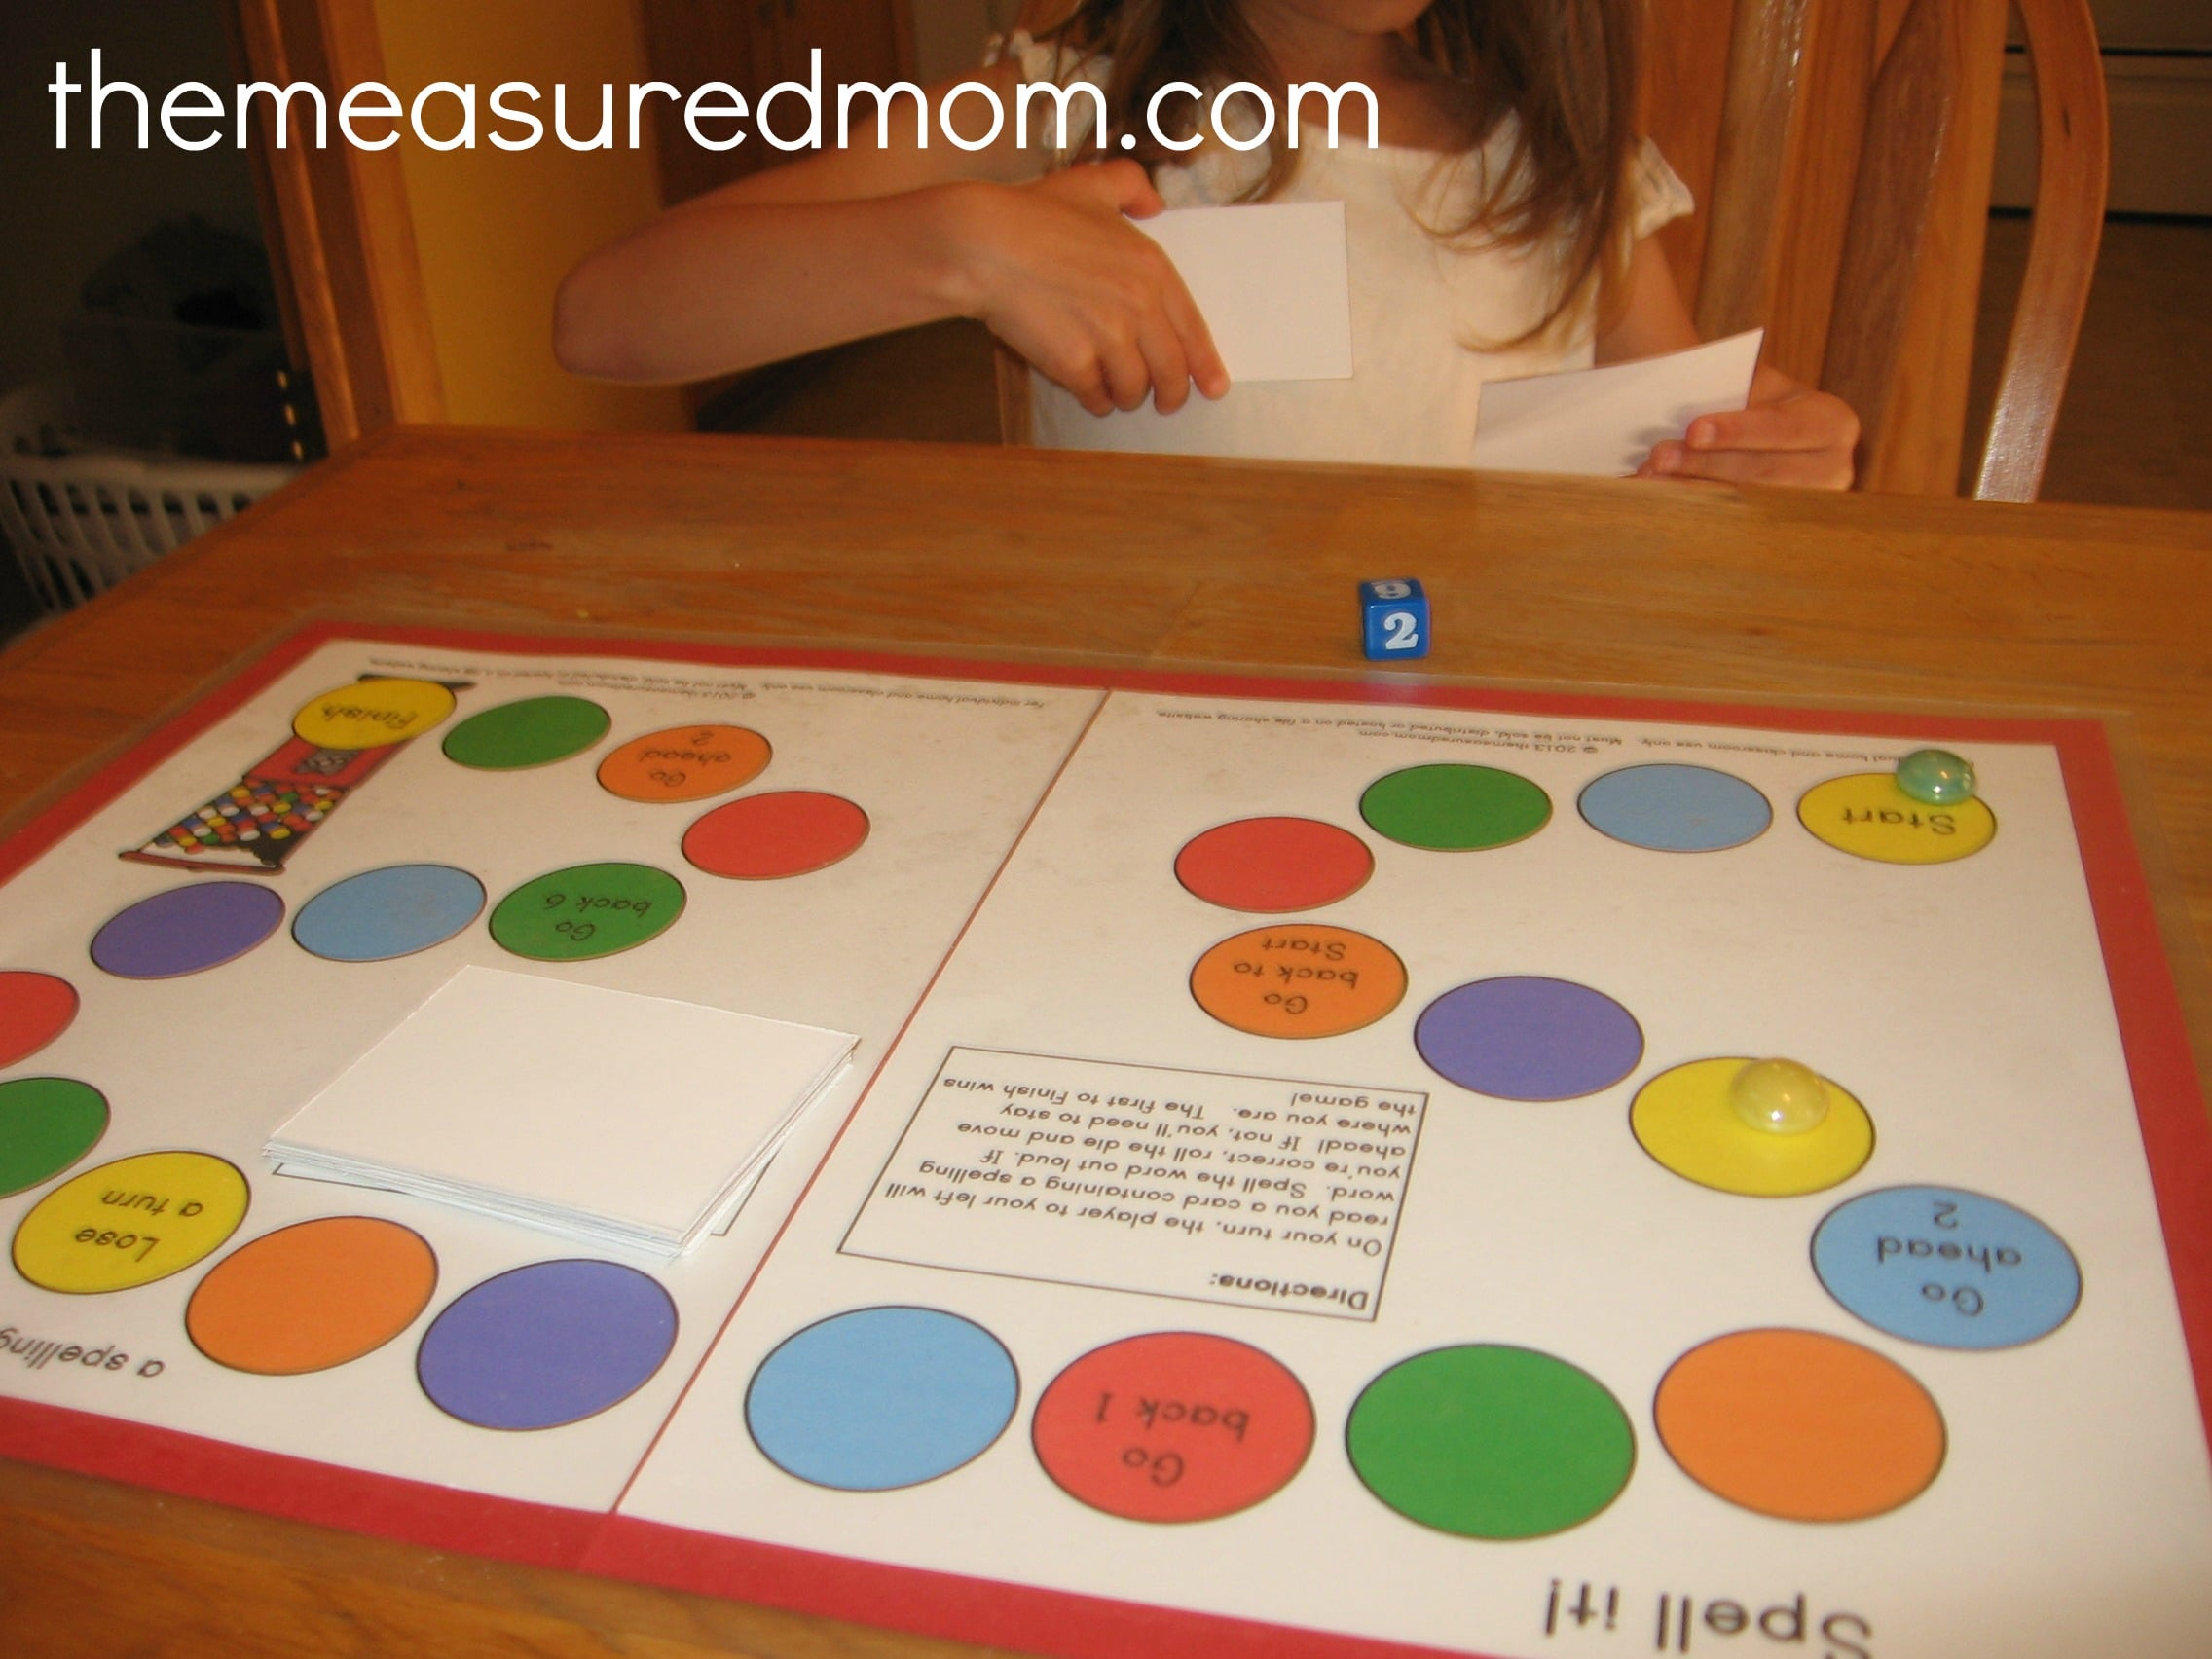 Make spelling fun with hands-on word sorts and free printable games!